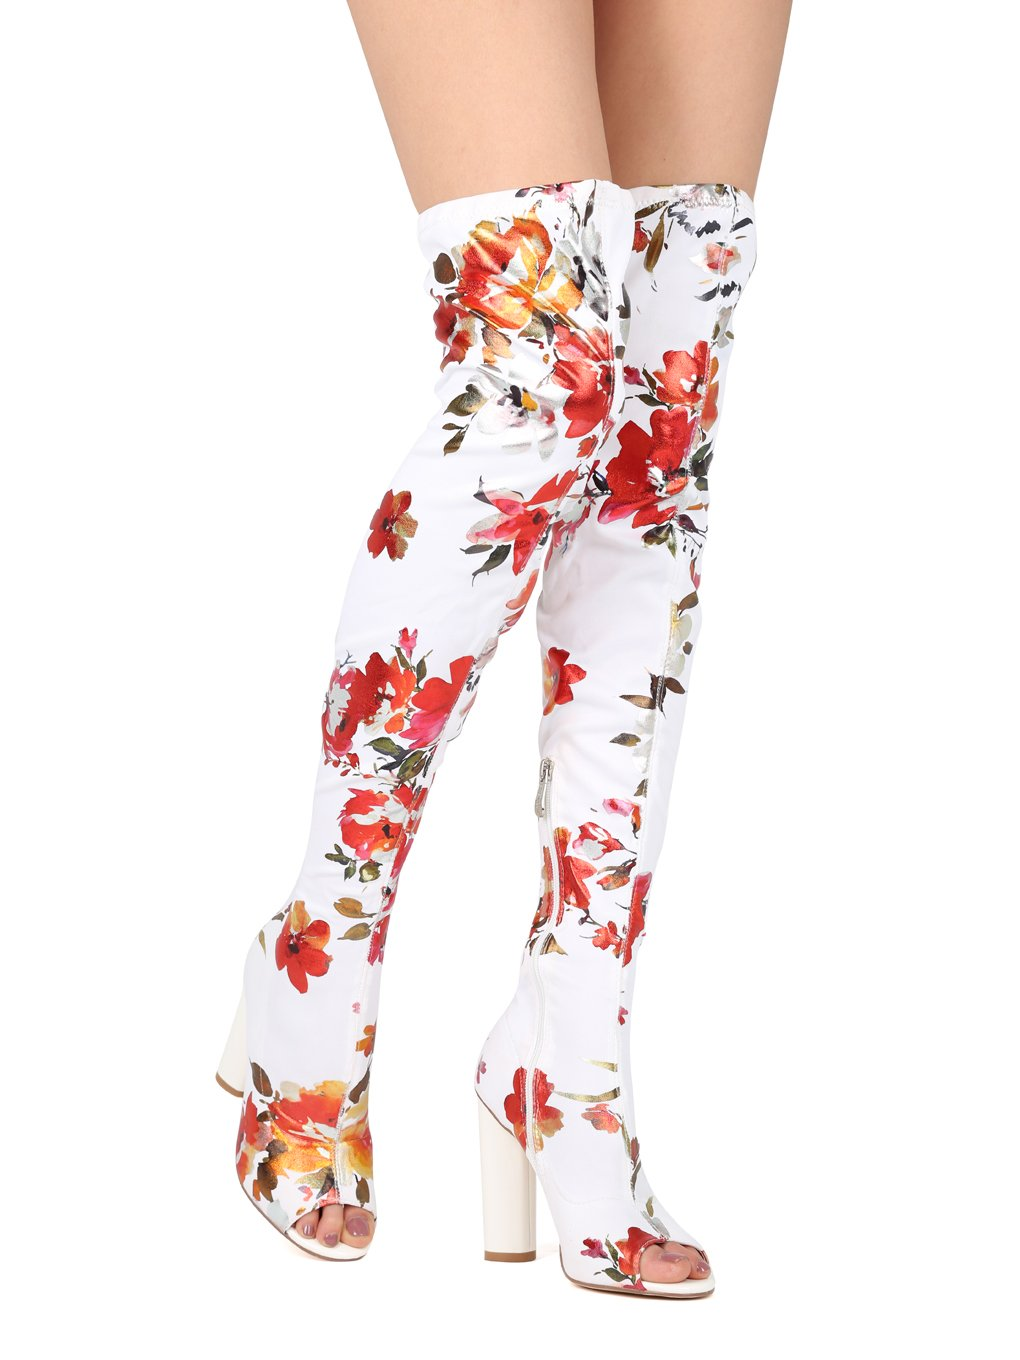 Alrisco Women Floral Fabric Peep Toe Thigh High Chunky Heel Boot HH81 - White (Size: 8.5)